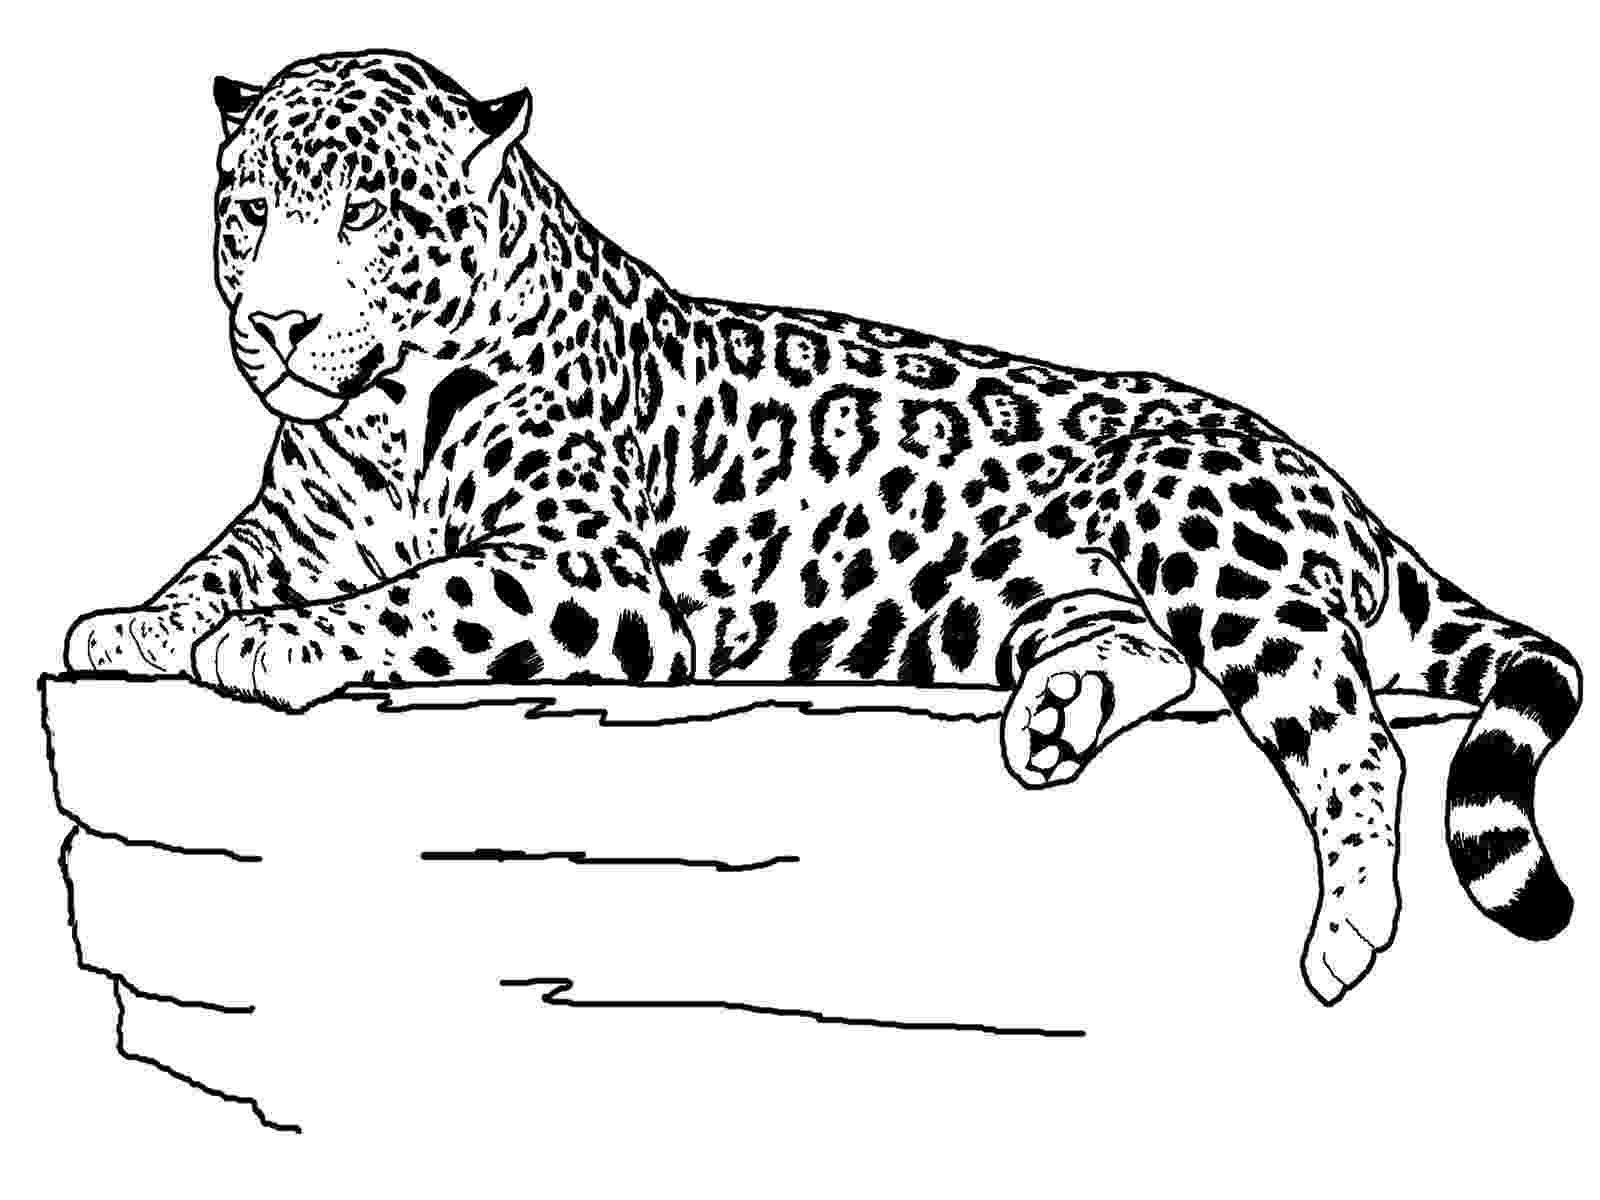 coloring pages animals realistic realistic coloring pages for adults realistic alligator coloring realistic pages animals